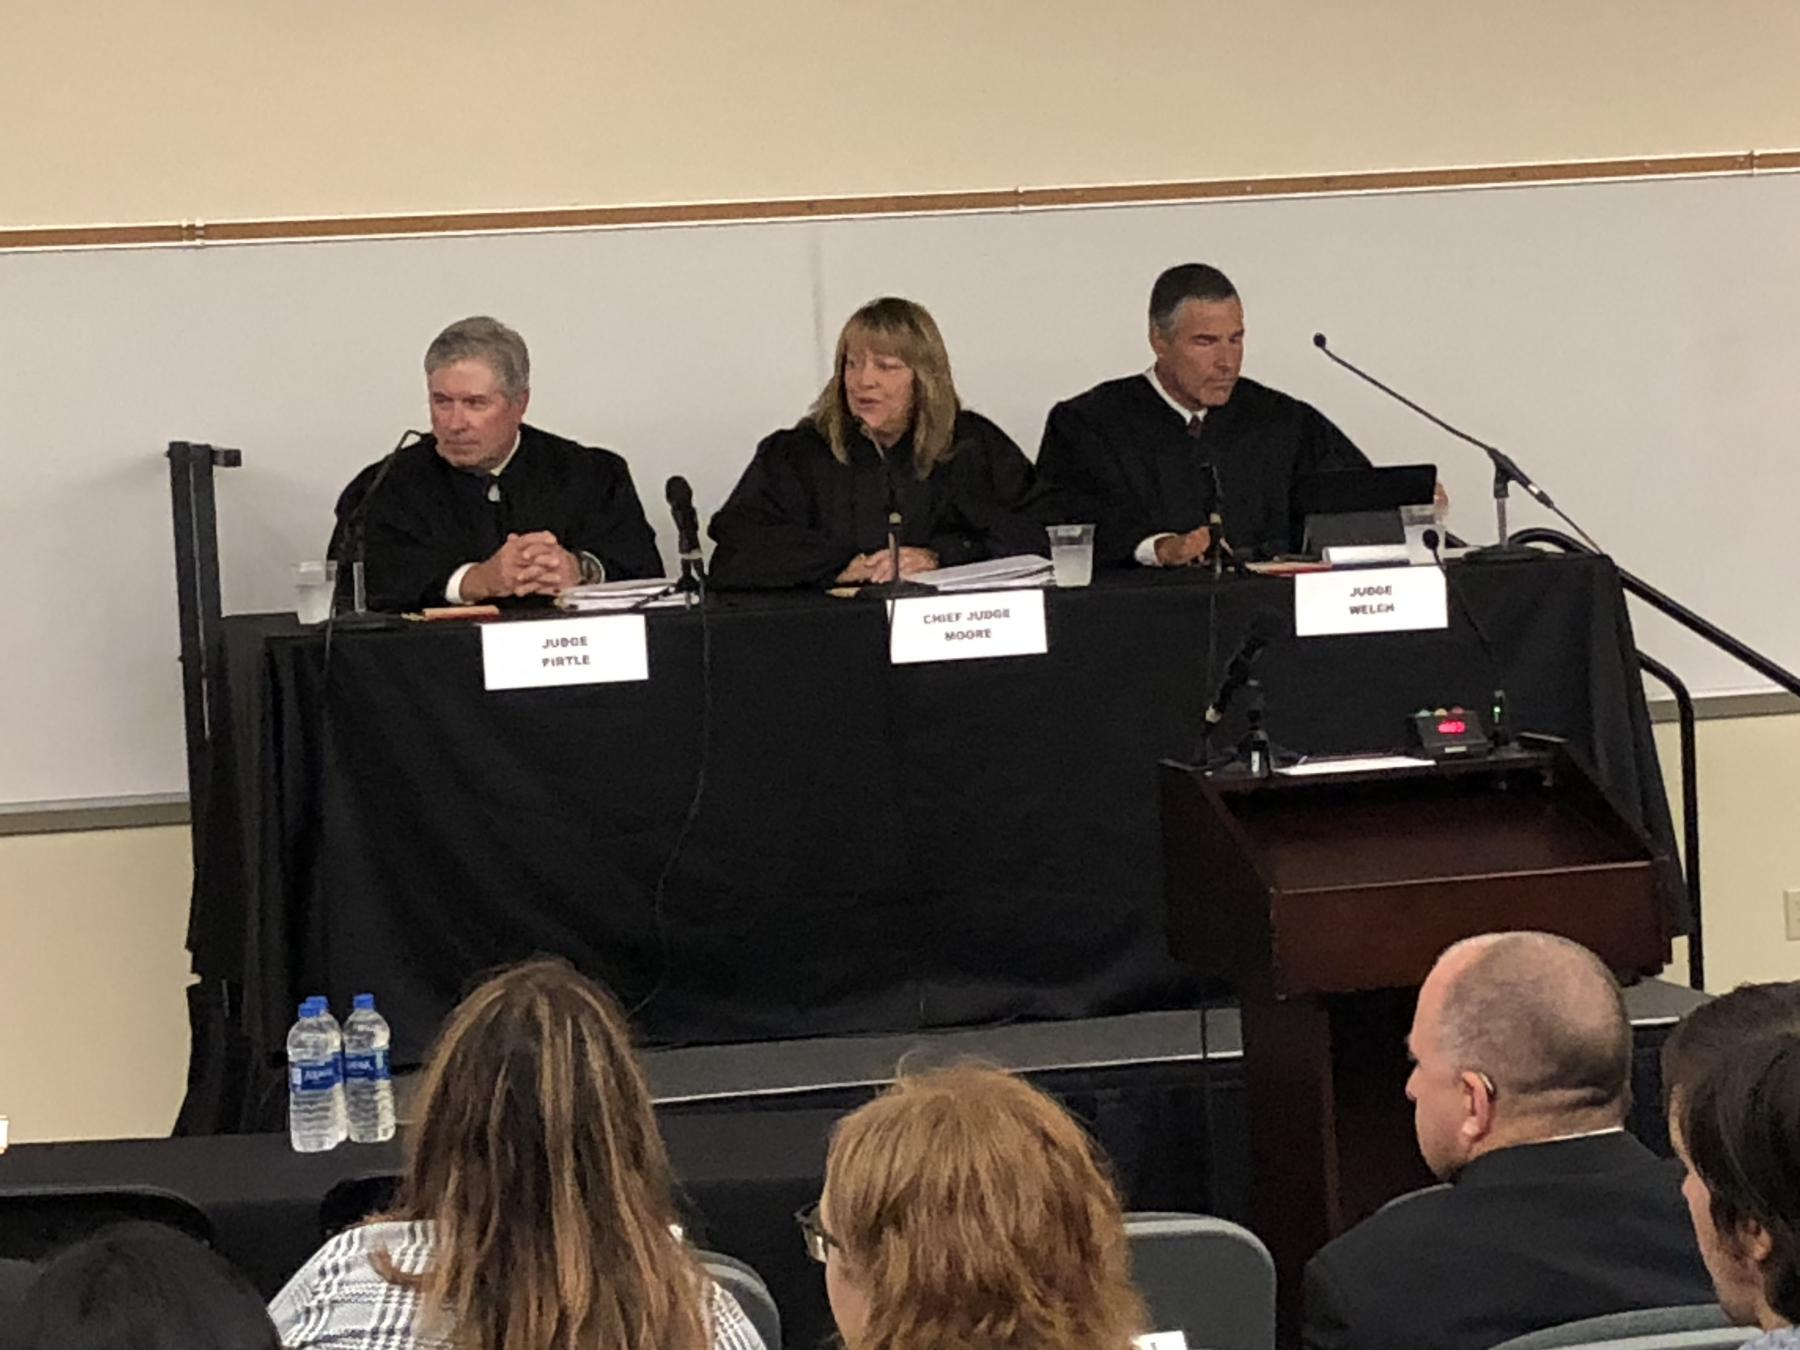 Judges begin hearing the cases presented at Nebraska State Court of Appeals.